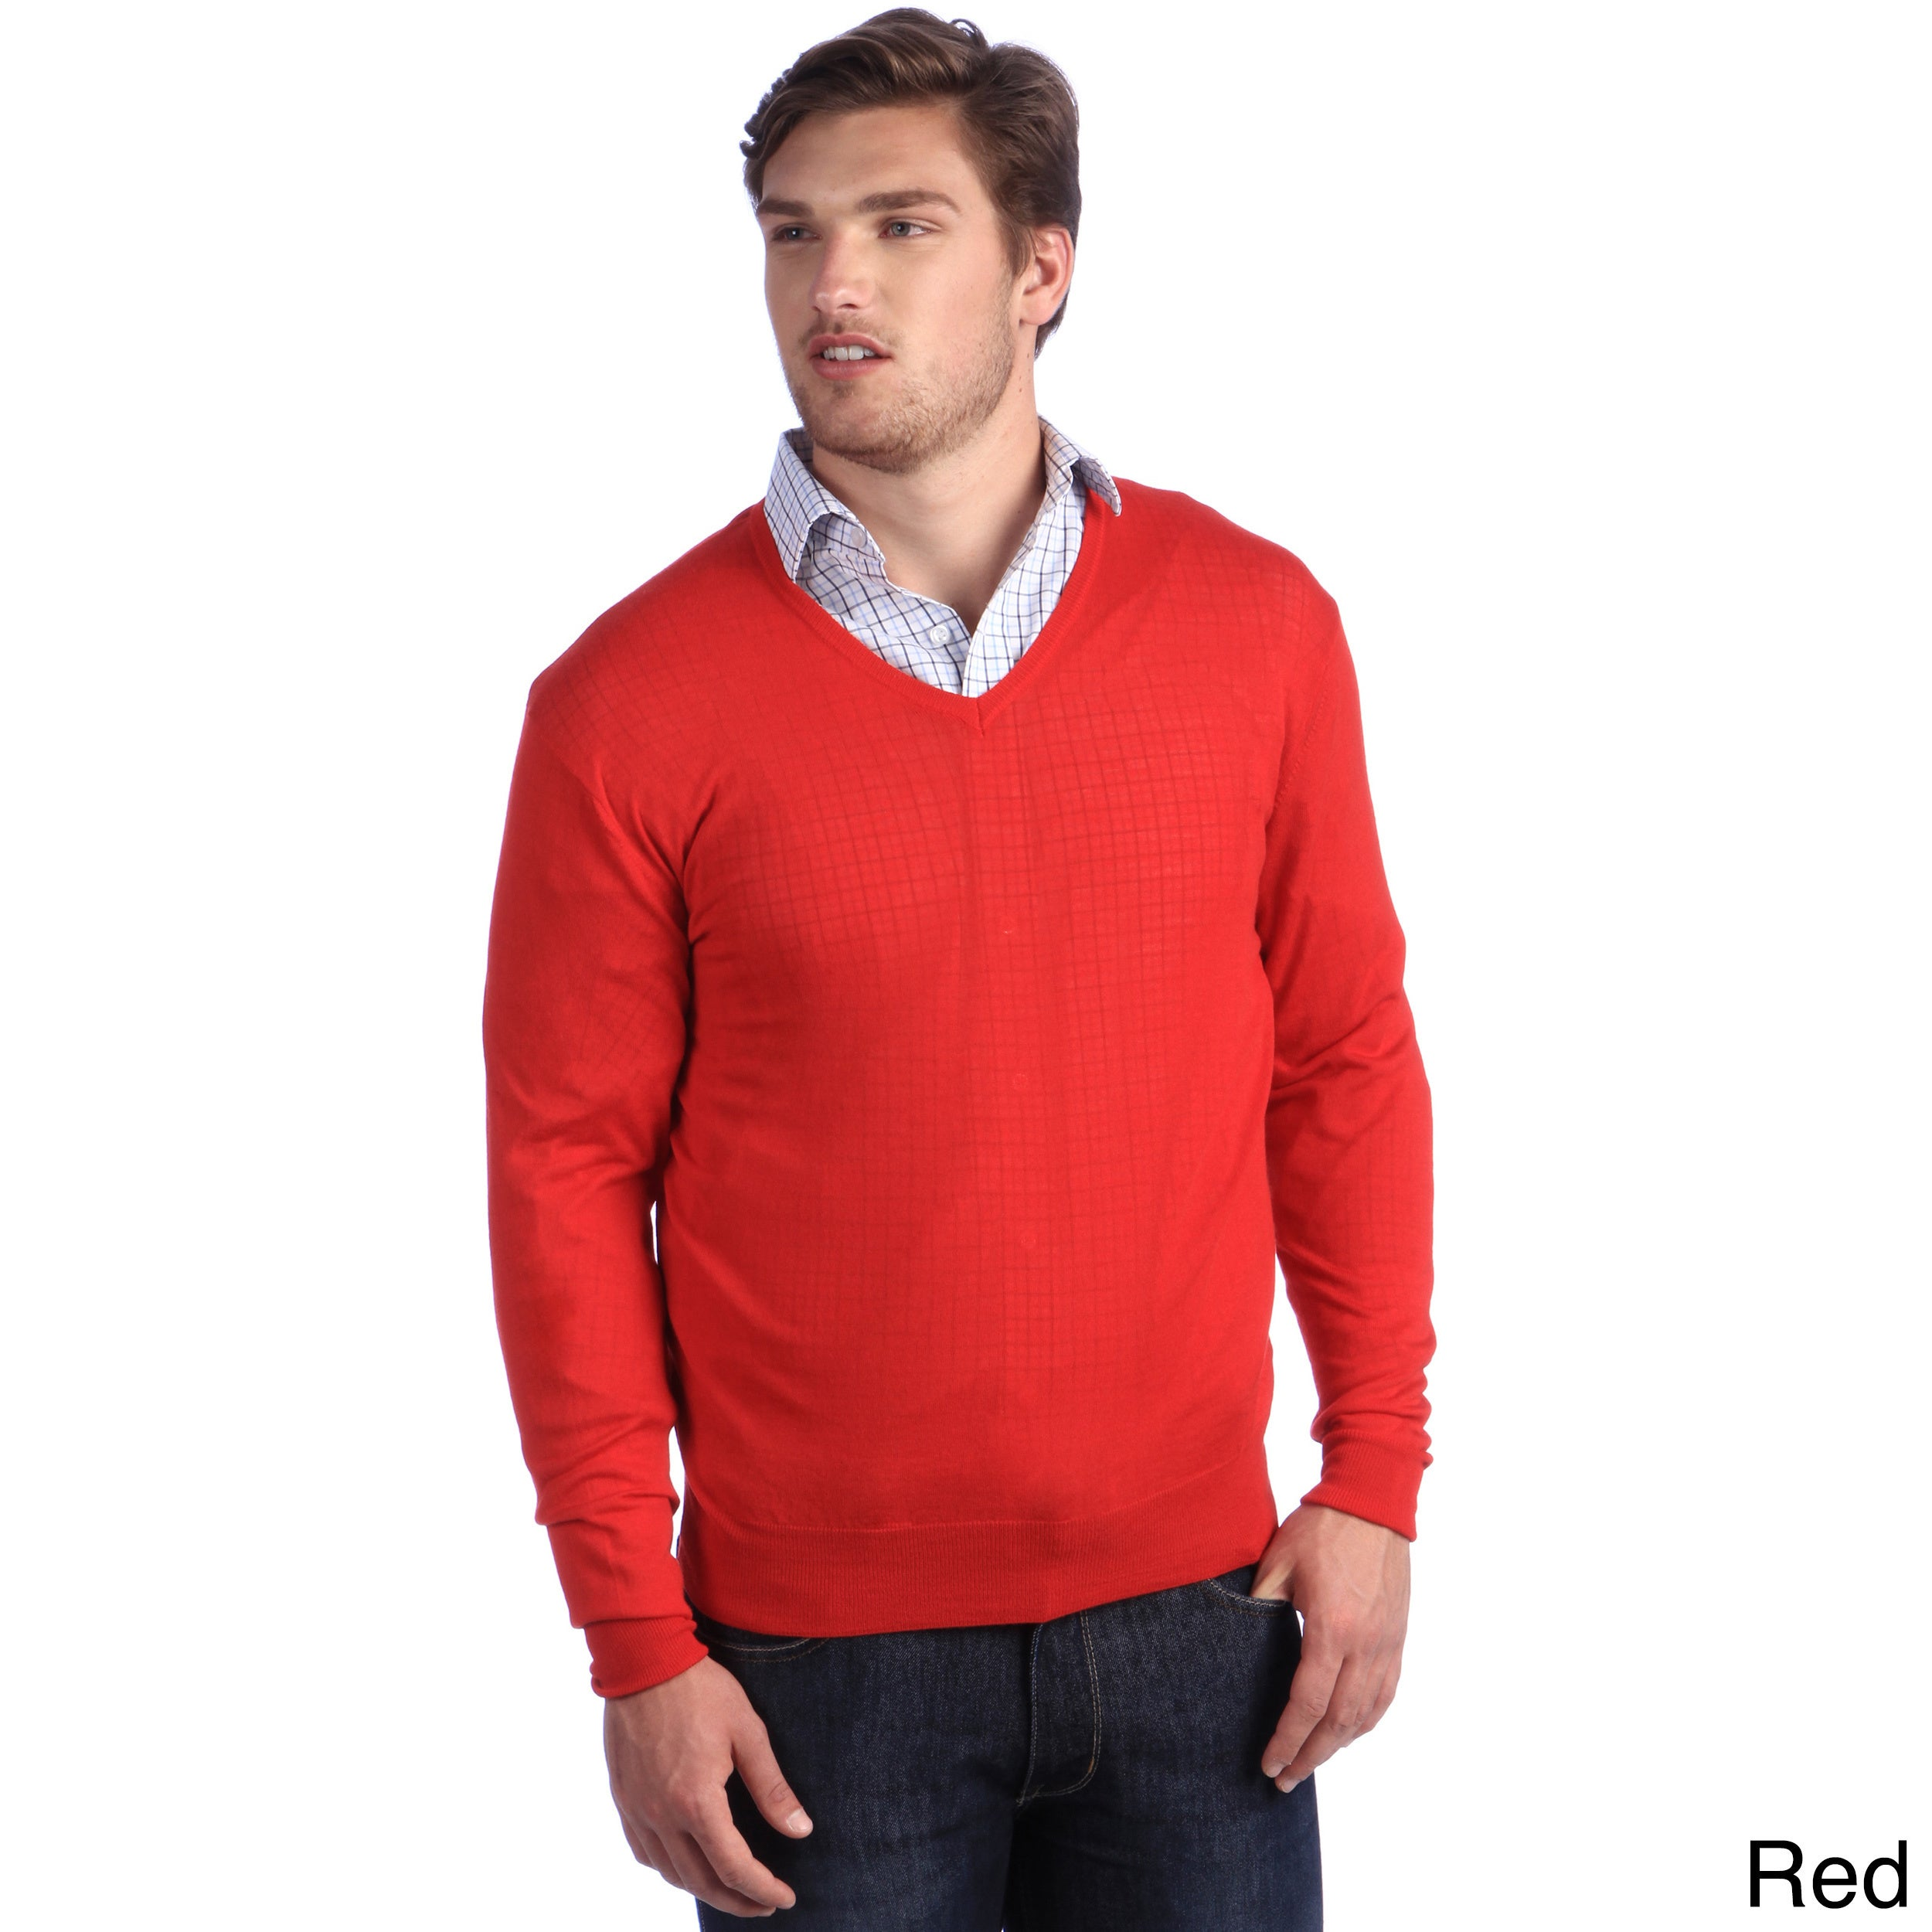 Luigi Baldo Italian Made Mens Fine Gauge Merino V neck Sweater